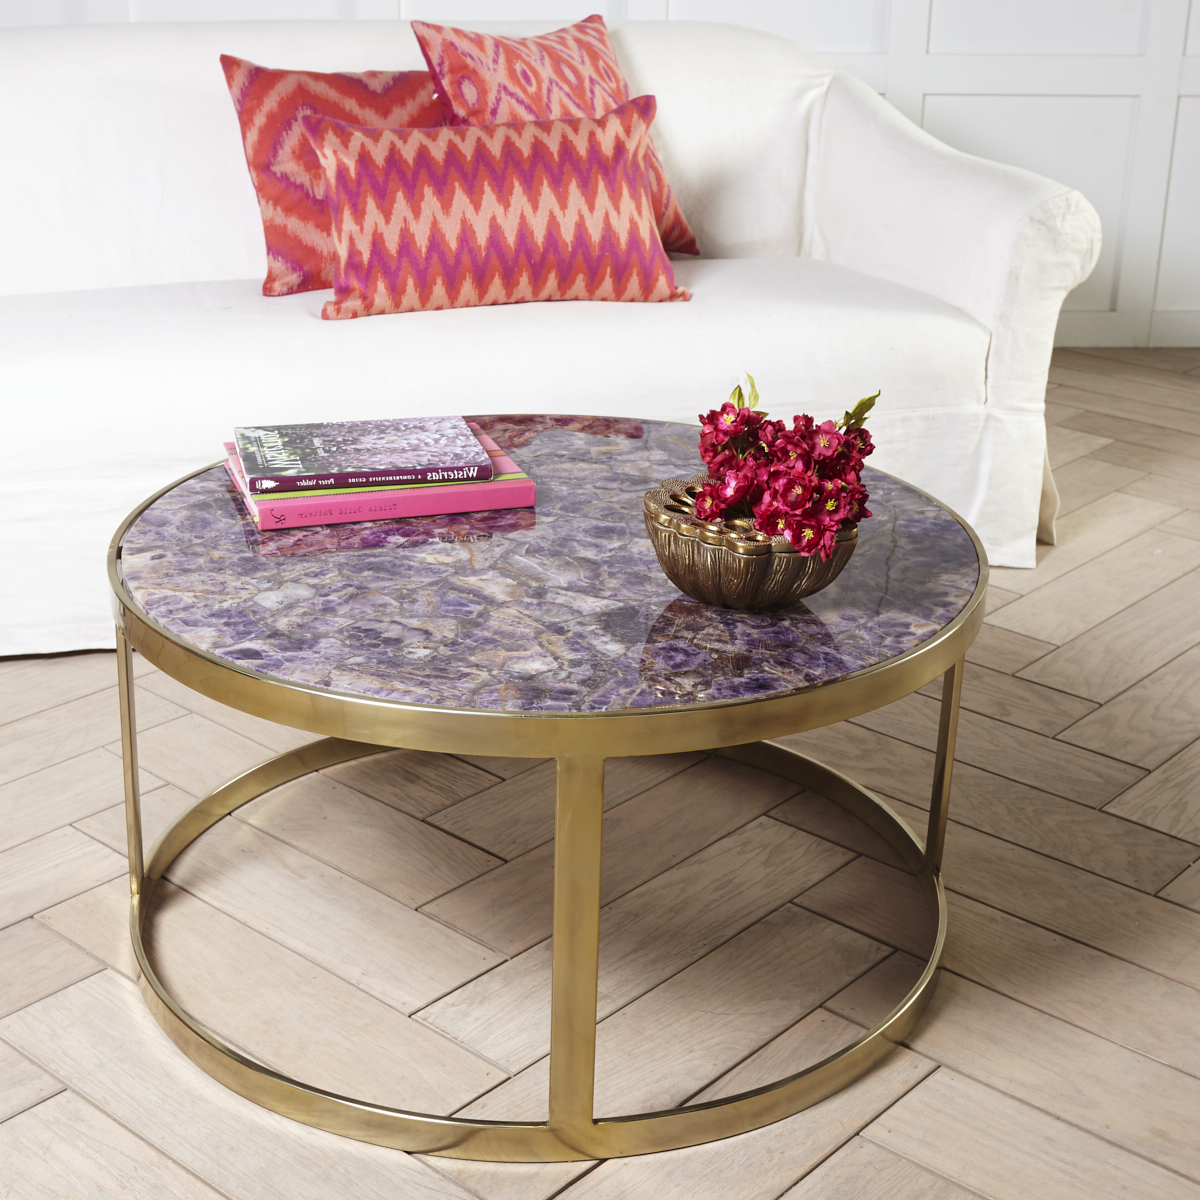 Broll Coffee Tables For Best And Newest Stone Top Coffee Table (View 3 of 20)